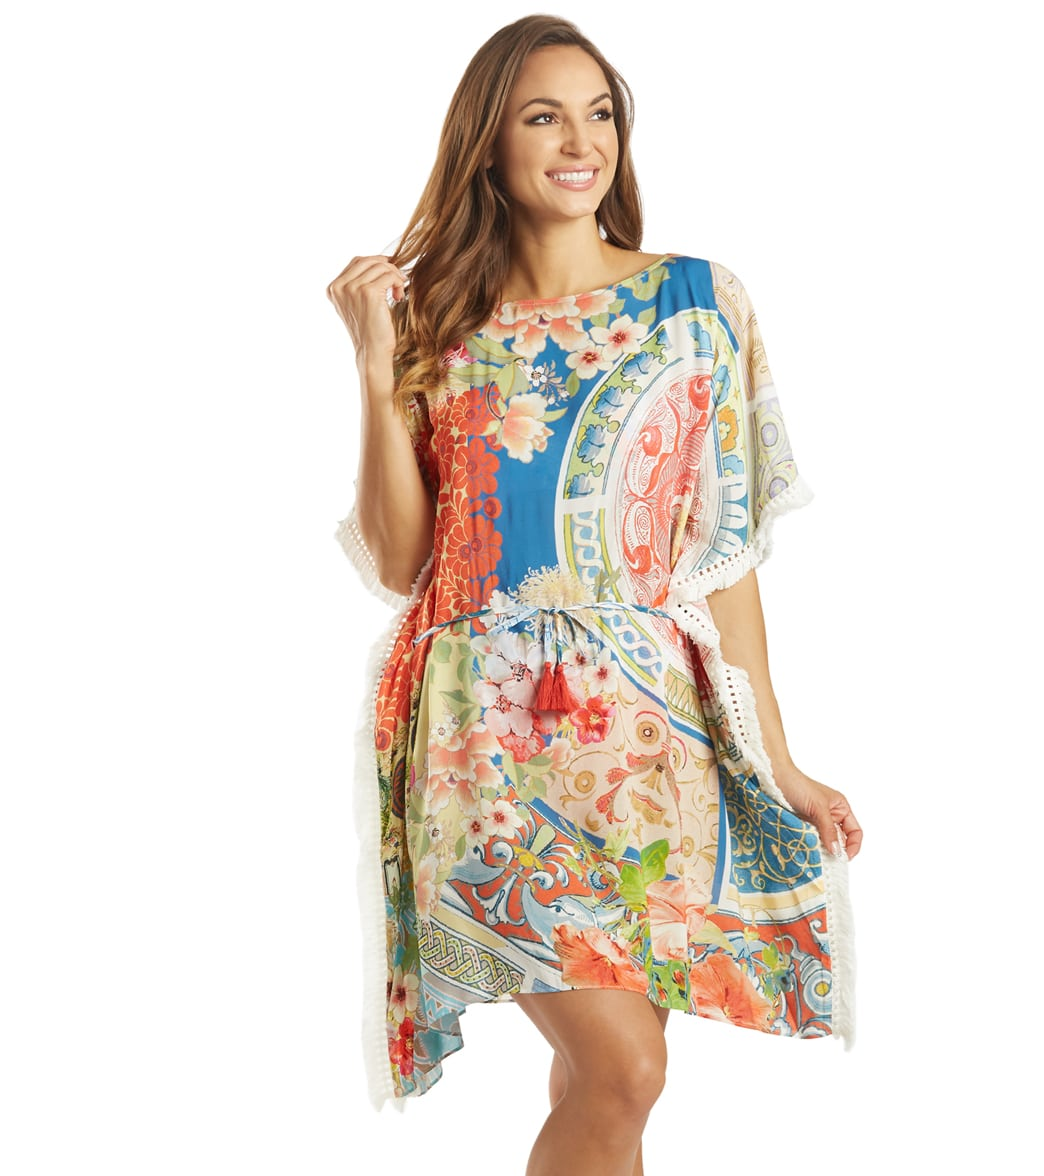 Johnny Was Women's Boho Cover Up Tunic